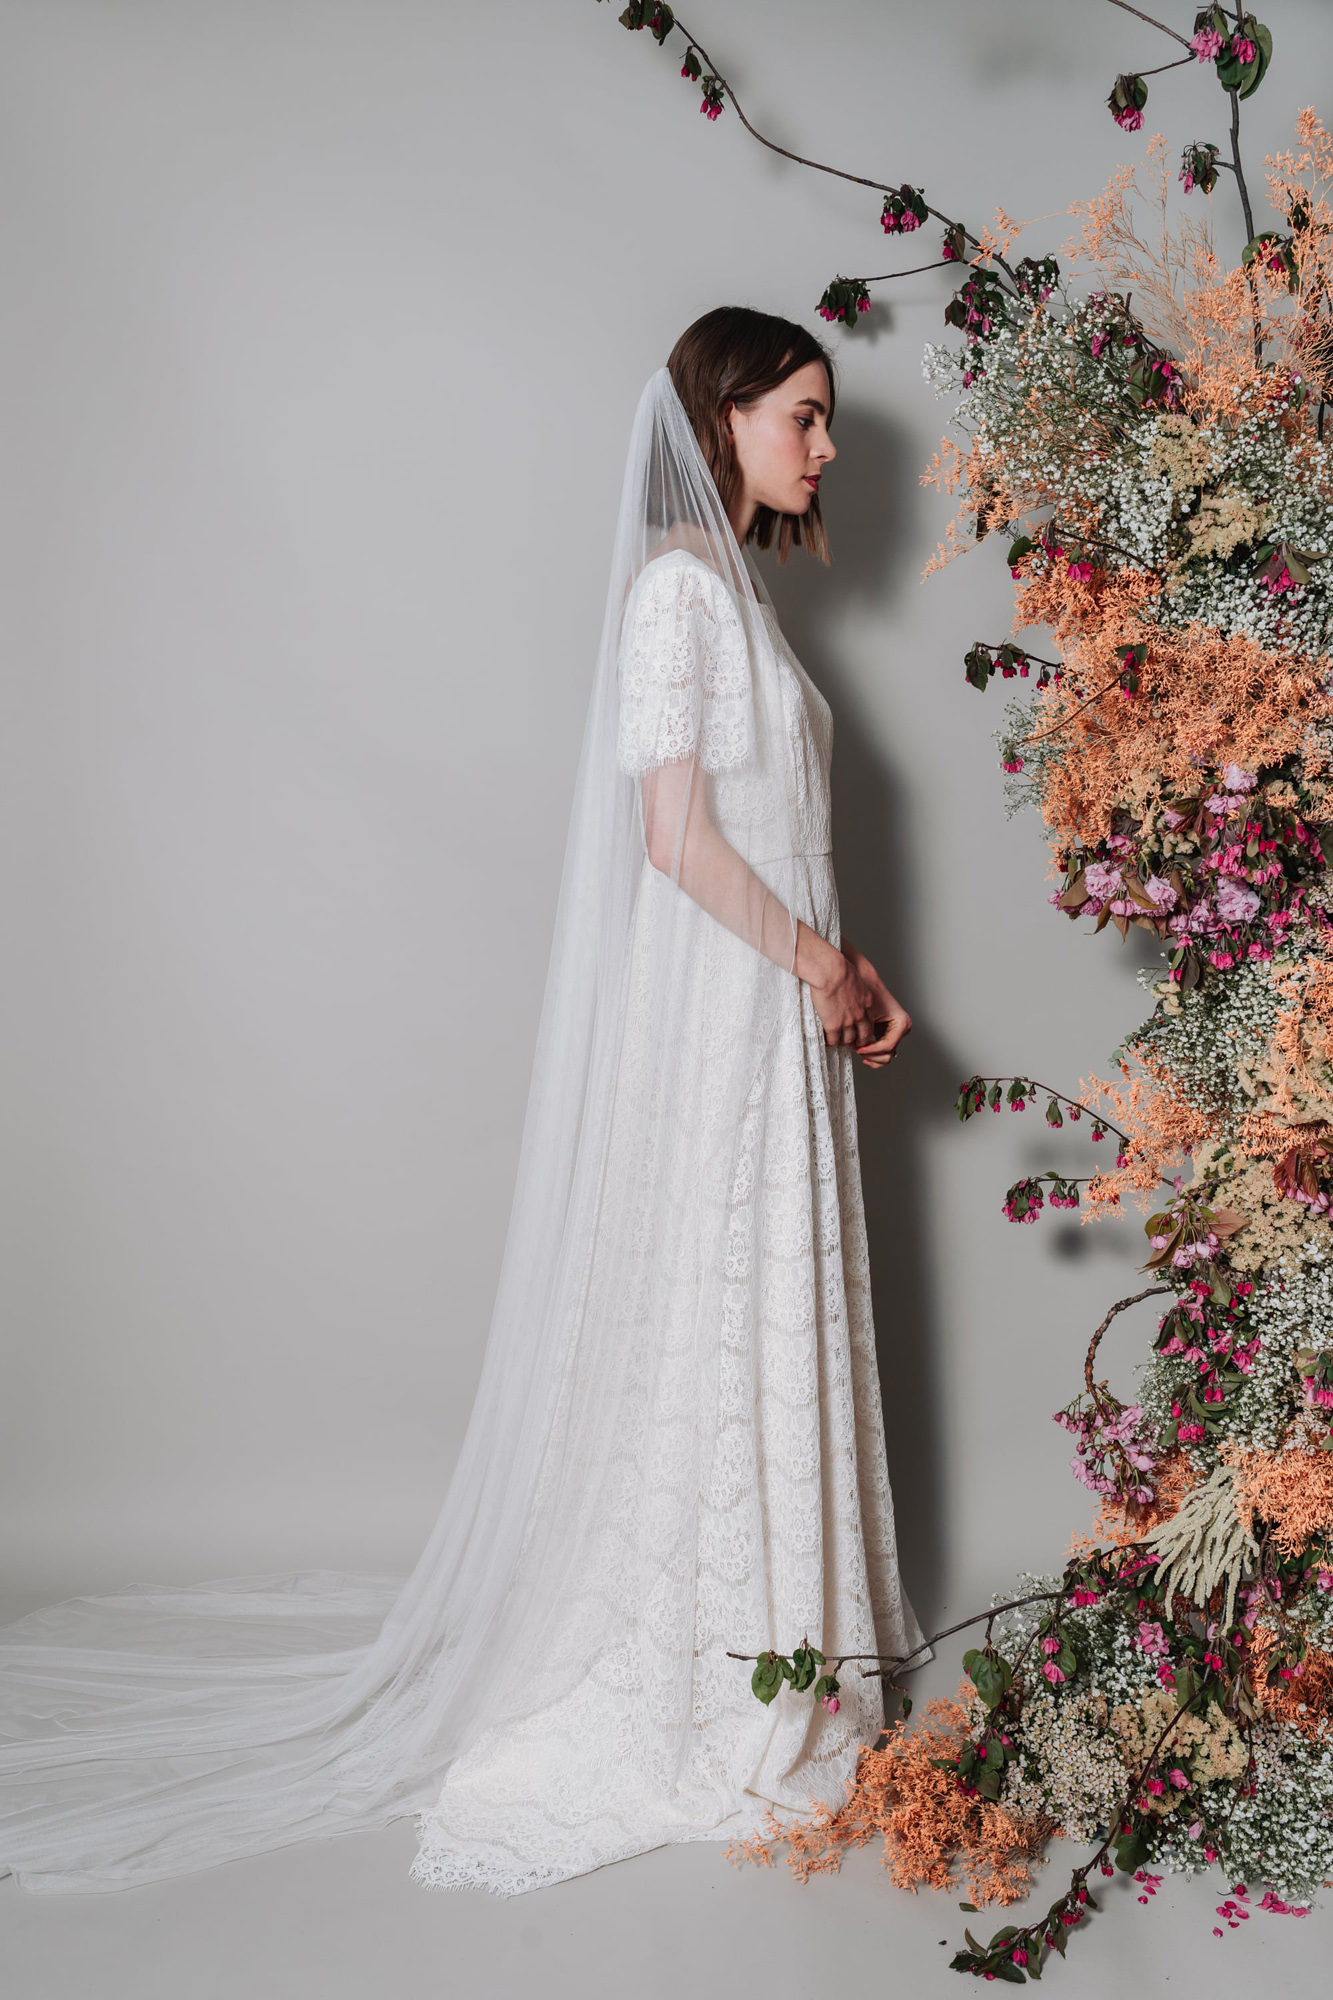 Kate-Beaumont-Sheffield-Picot-Edge-Silky-Tulle-Ethereal-Veil-13.jpg